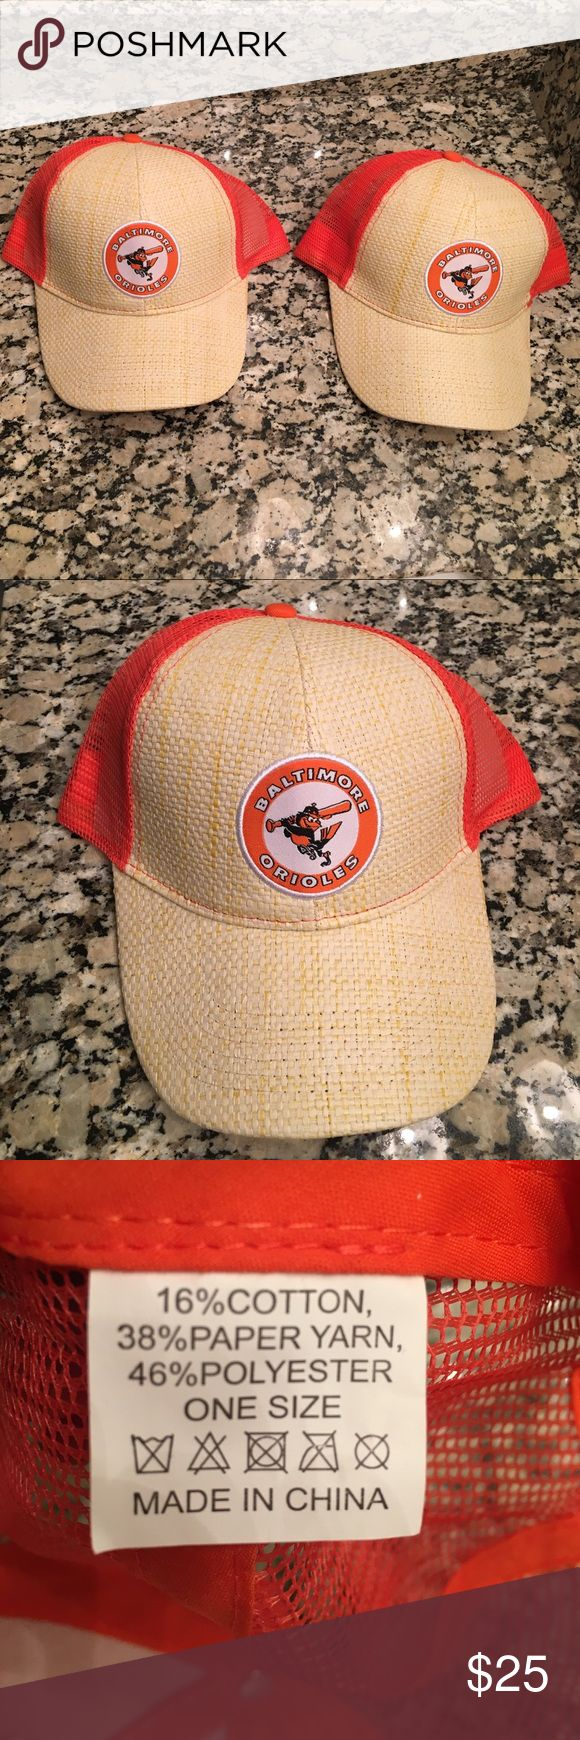 Baltimore orioles baseball hats Two is better than $25 | New without tags | One-size-fits-all Accessories Hats